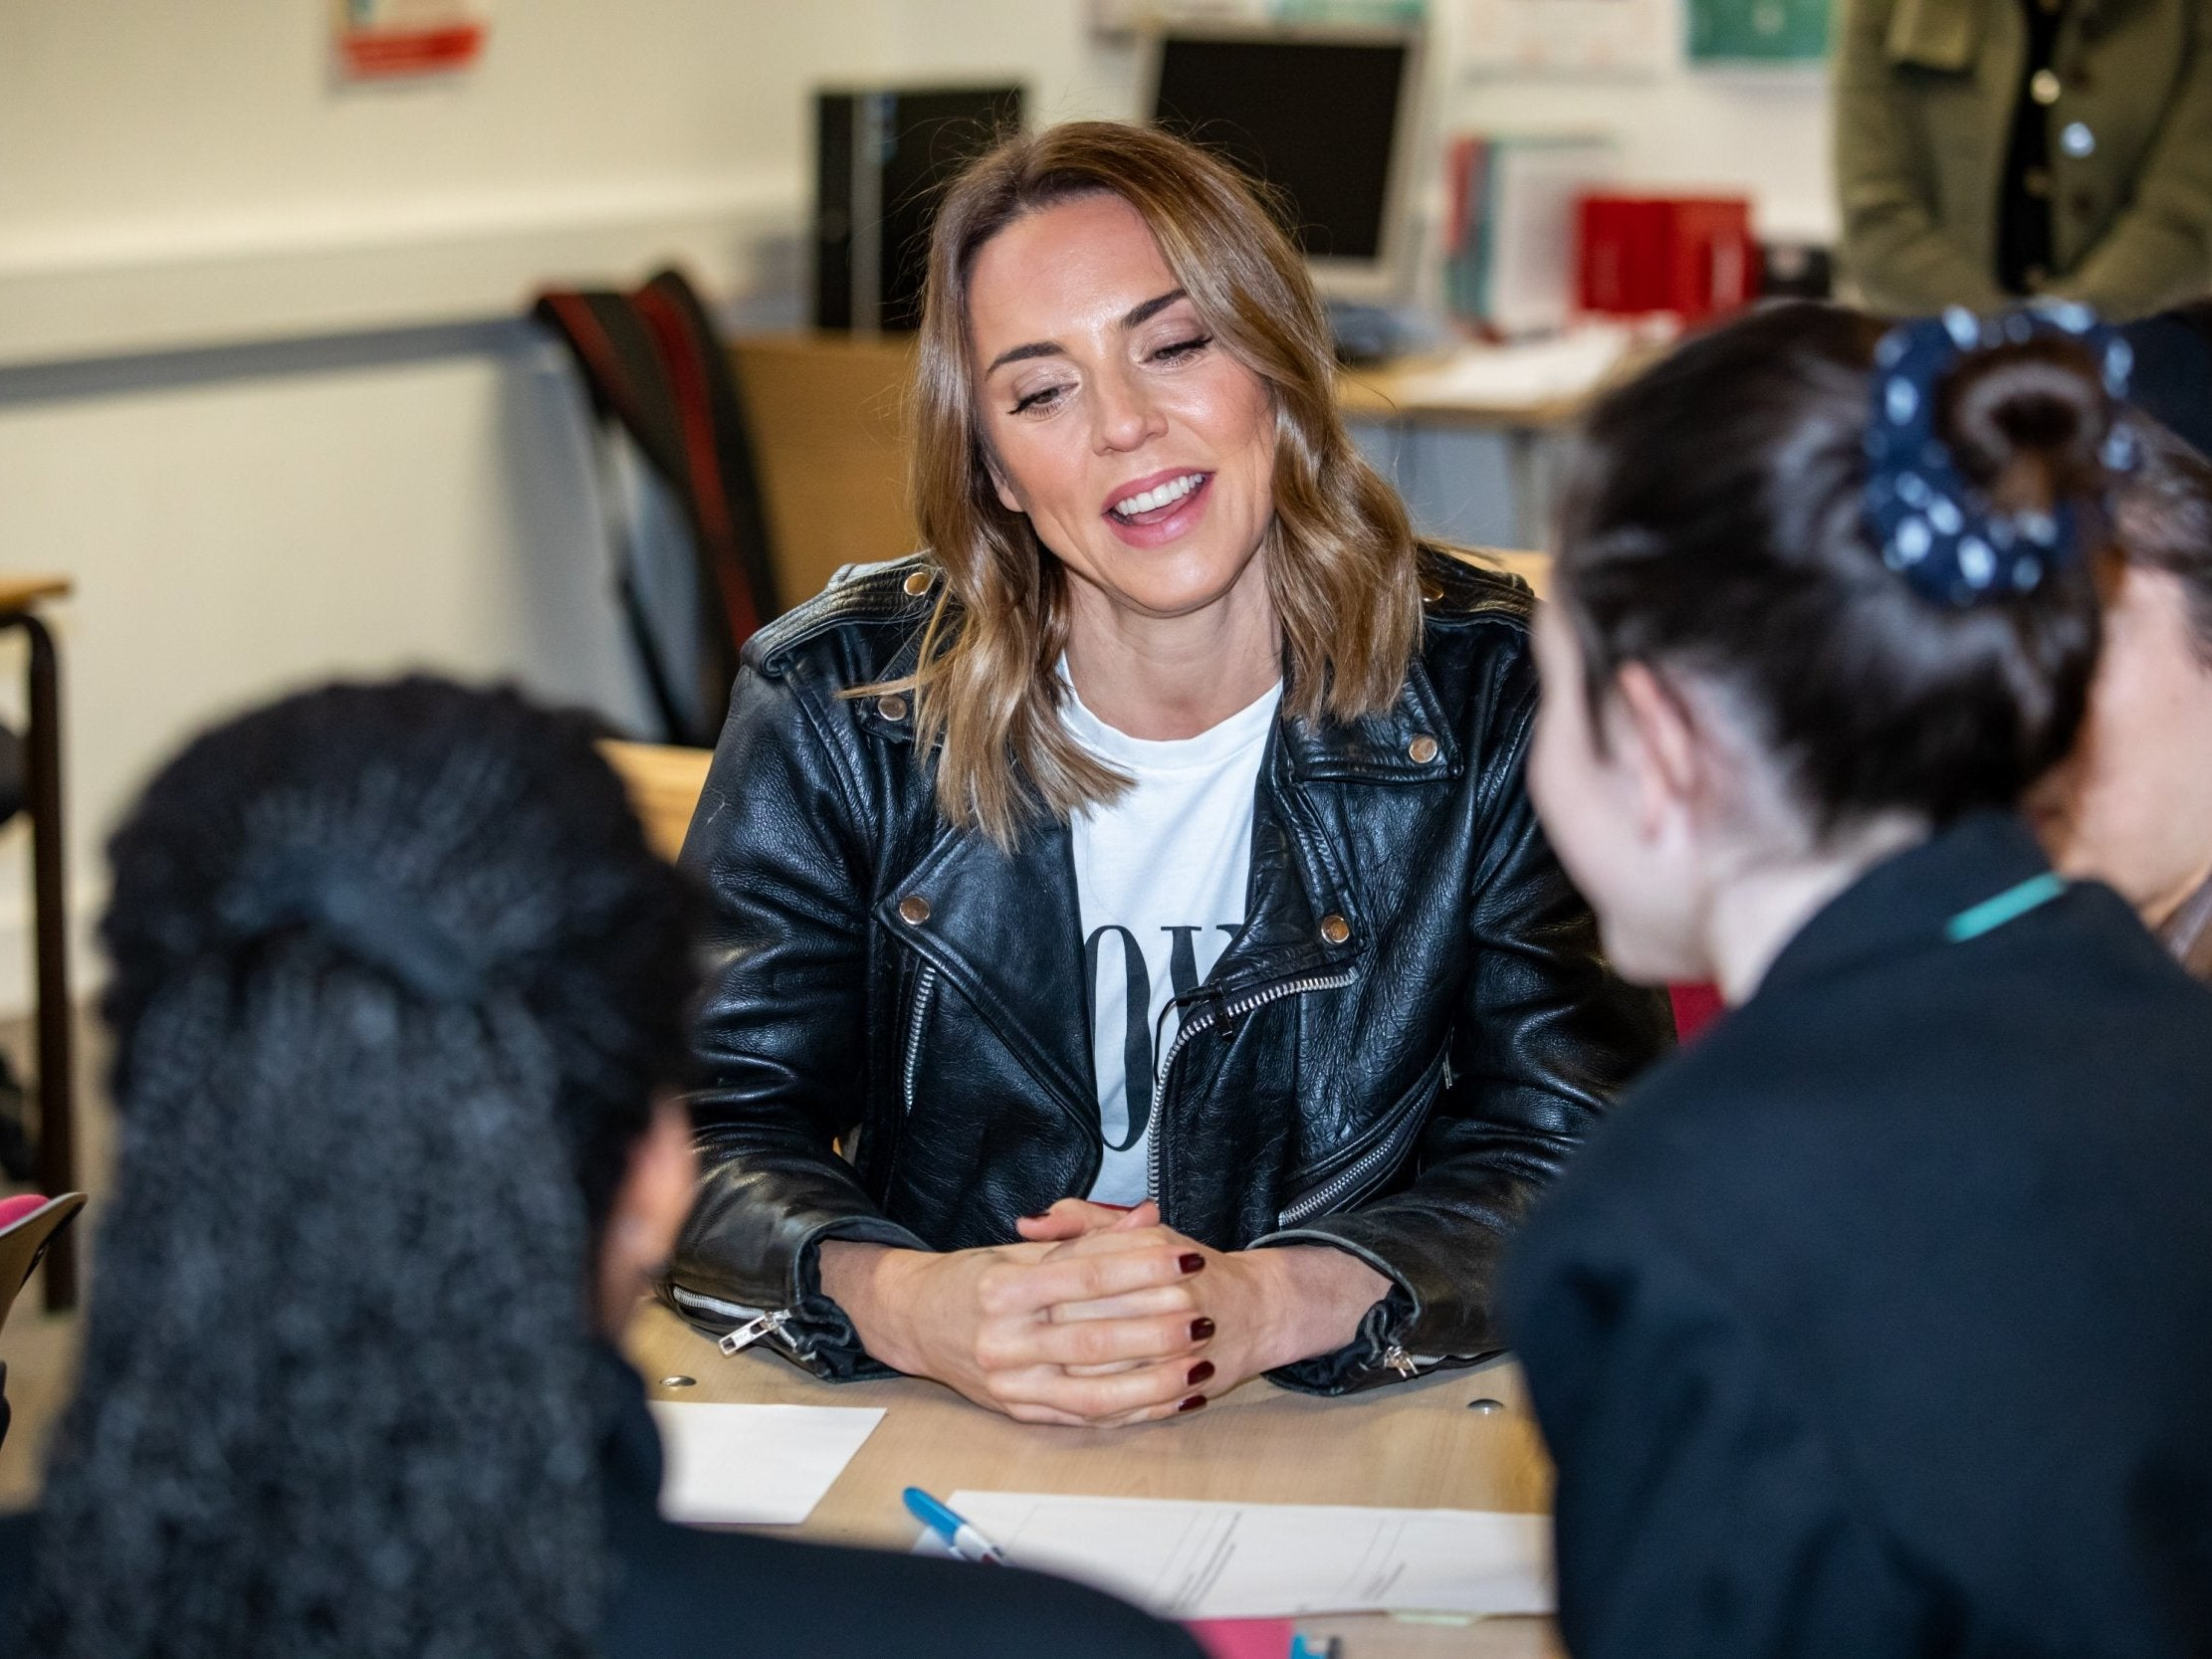 Learn to Live: Spice Girls star Melanie C joins students to talk